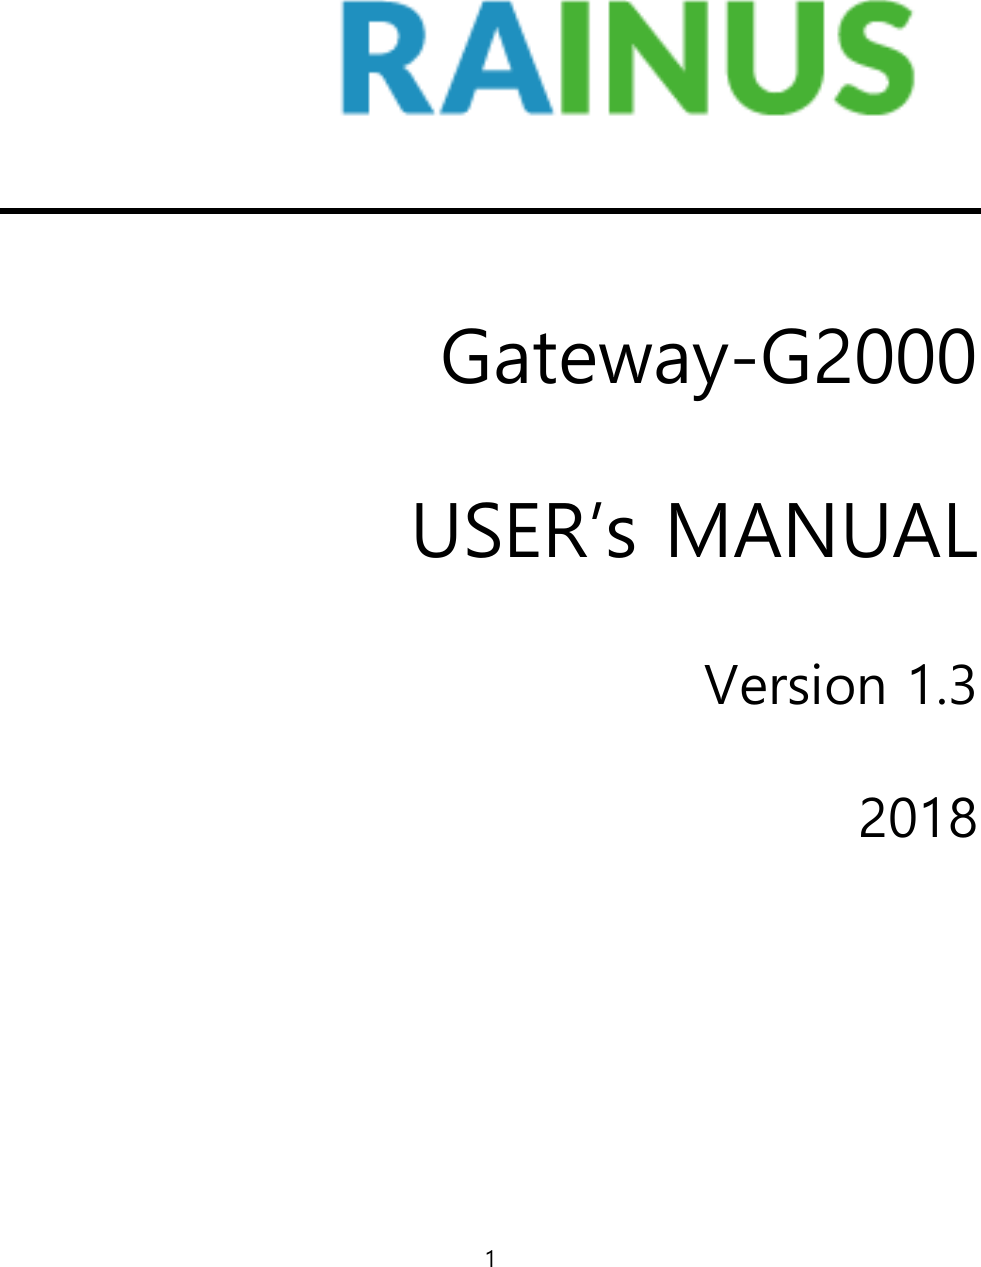 RainUs G2000 Gateway User Manual